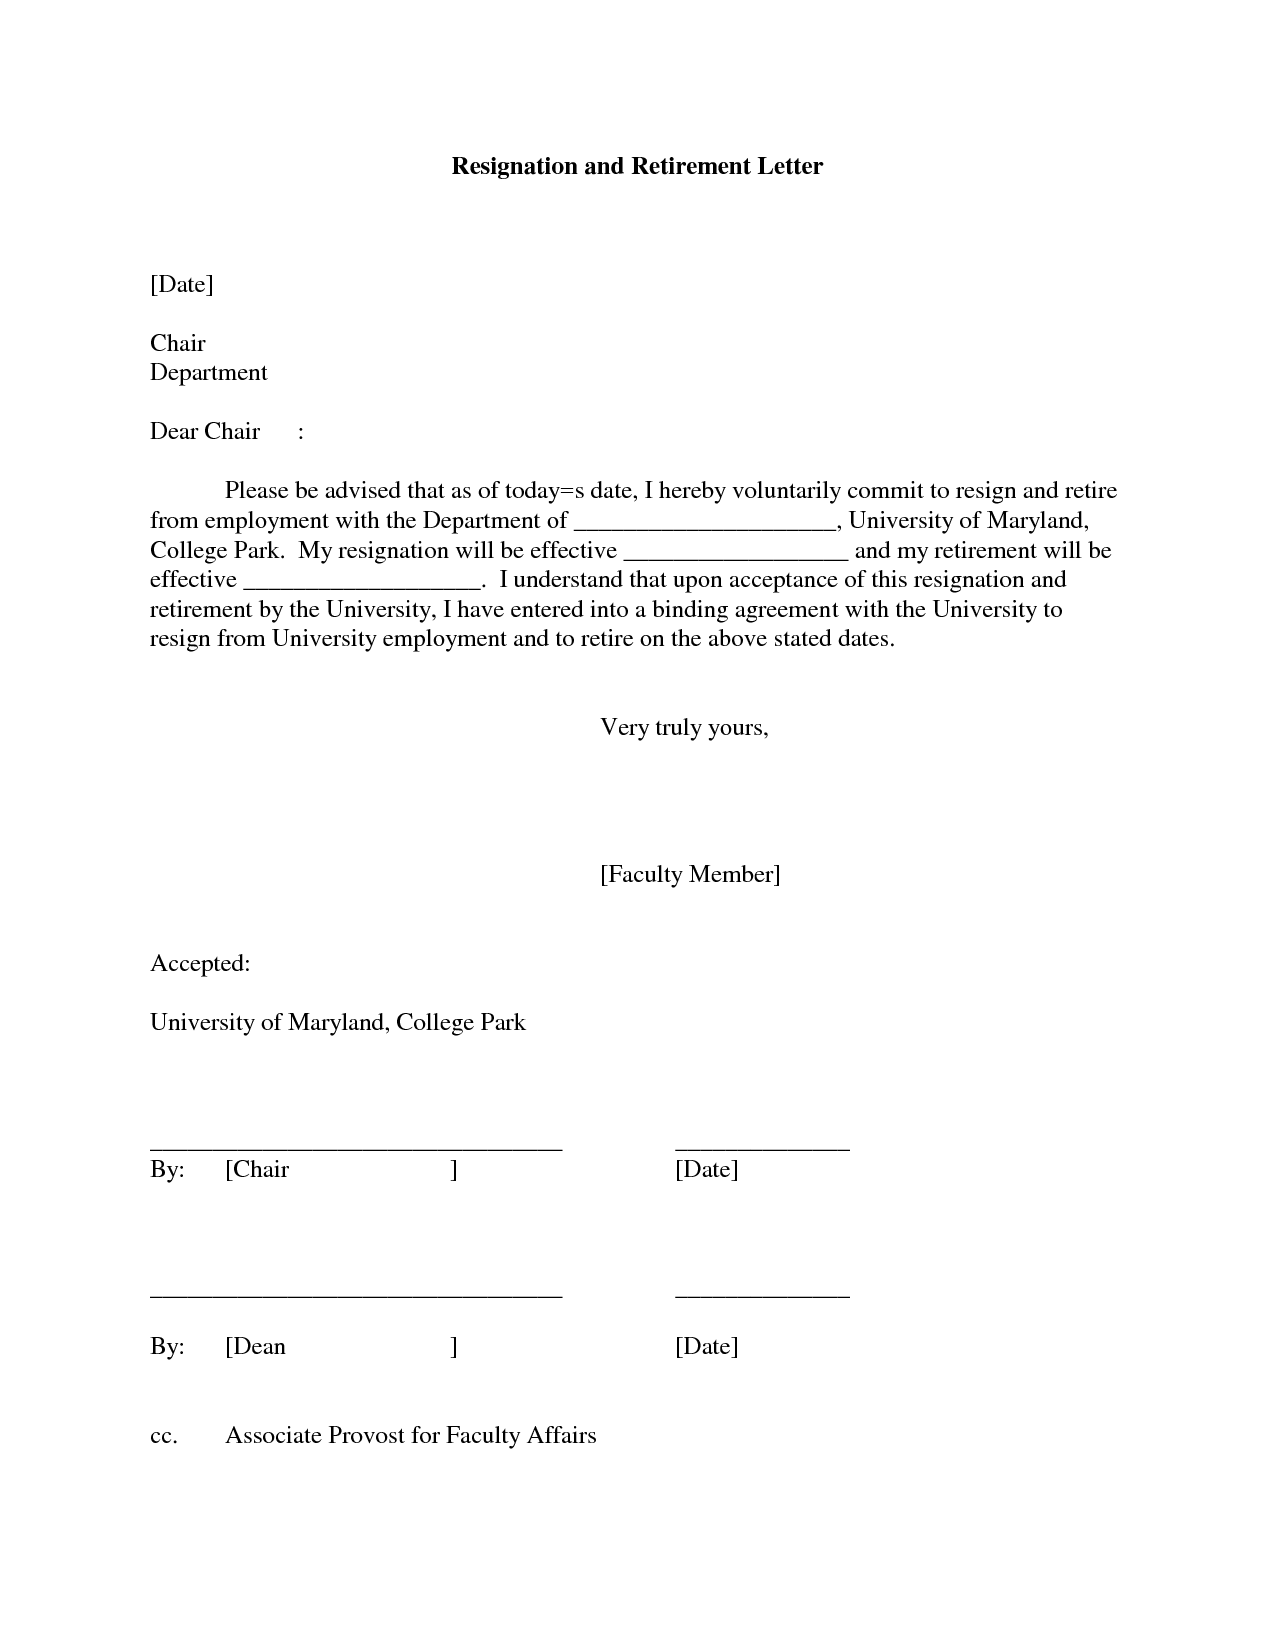 Resignation letter format shocking examples retirement letter of resignation letter format shocking examples retirement letter of resignation accepted vacation formal teacher ideas stunning thecheapjerseys Image collections